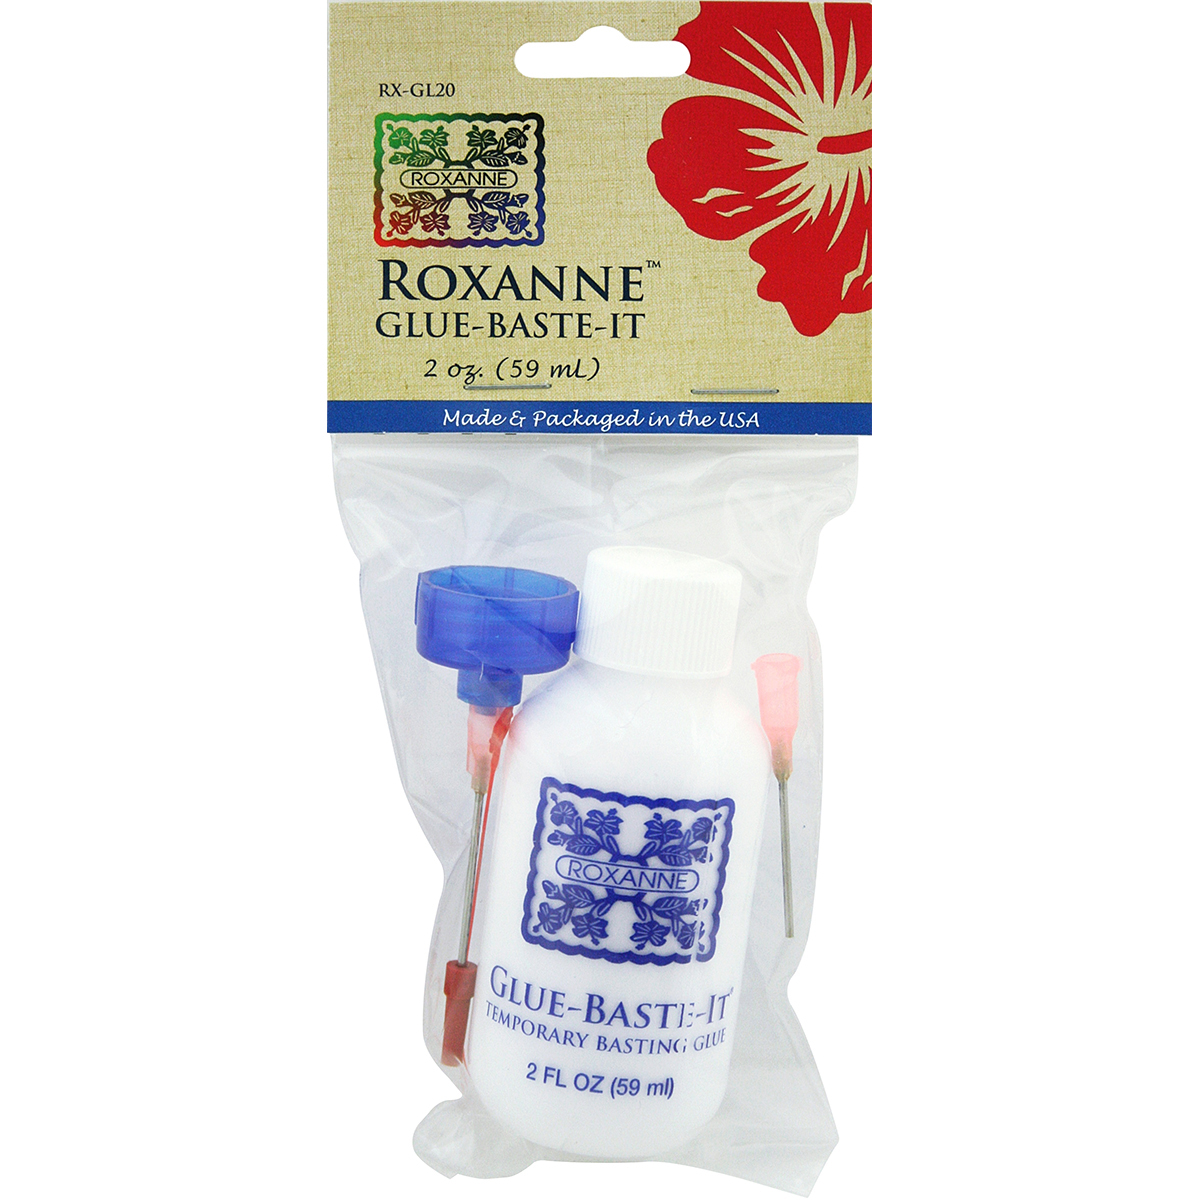 Roxanne Glue-Baste-It-2oz